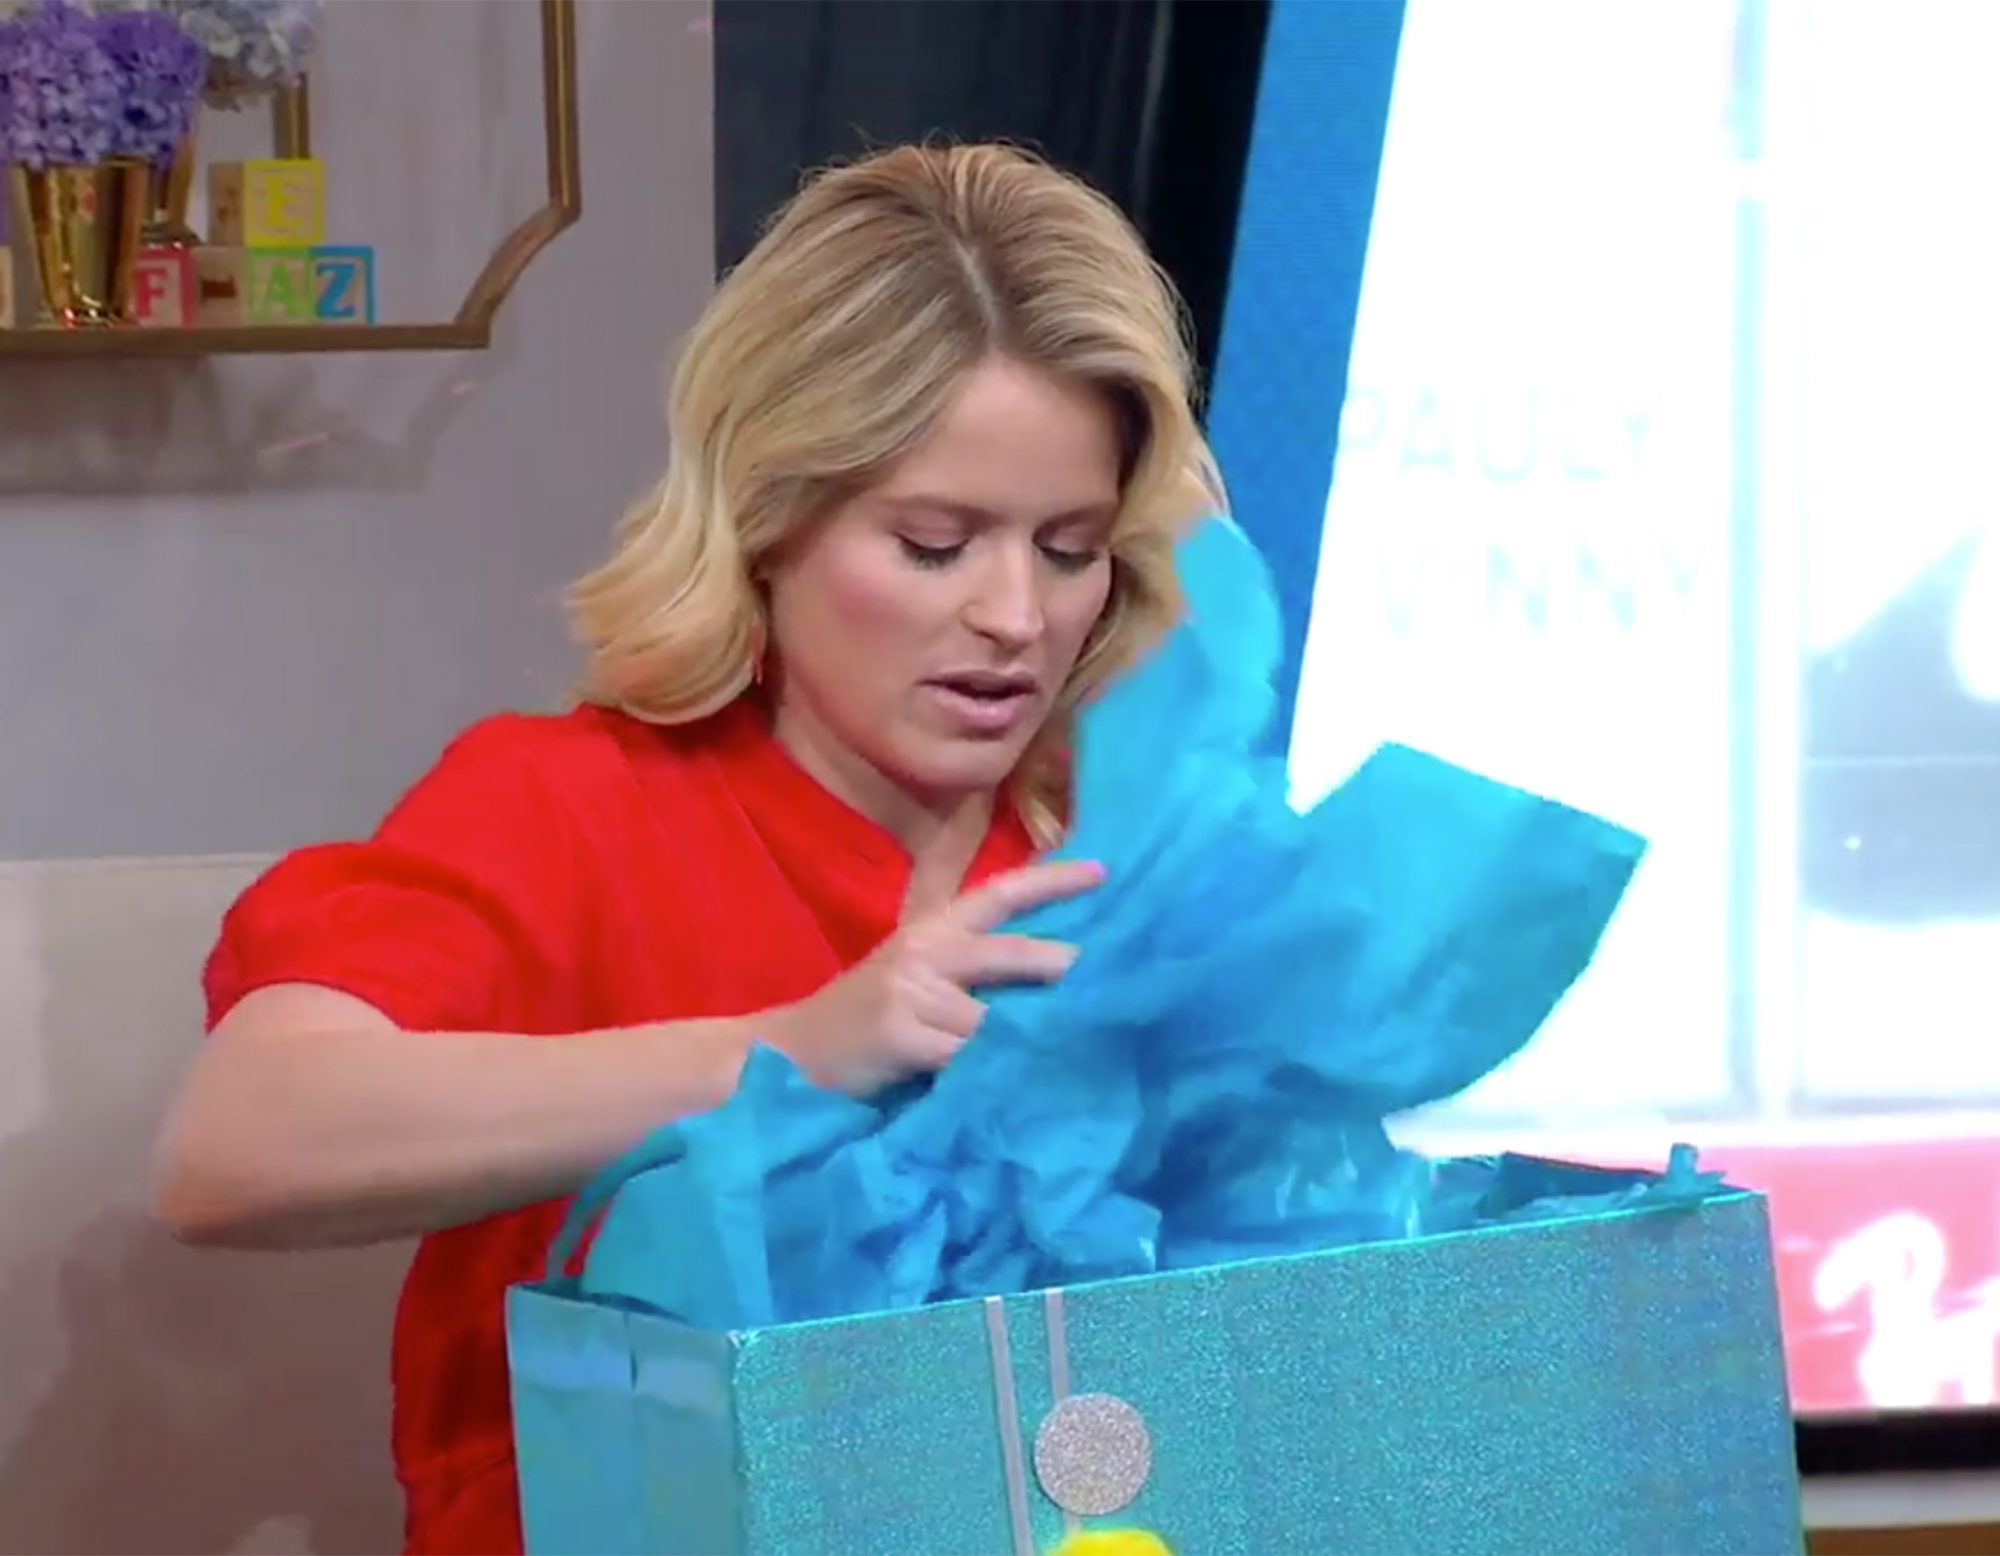 Sara Haines Receives Surprise Baby Shower From Co-Host Michael Strahan